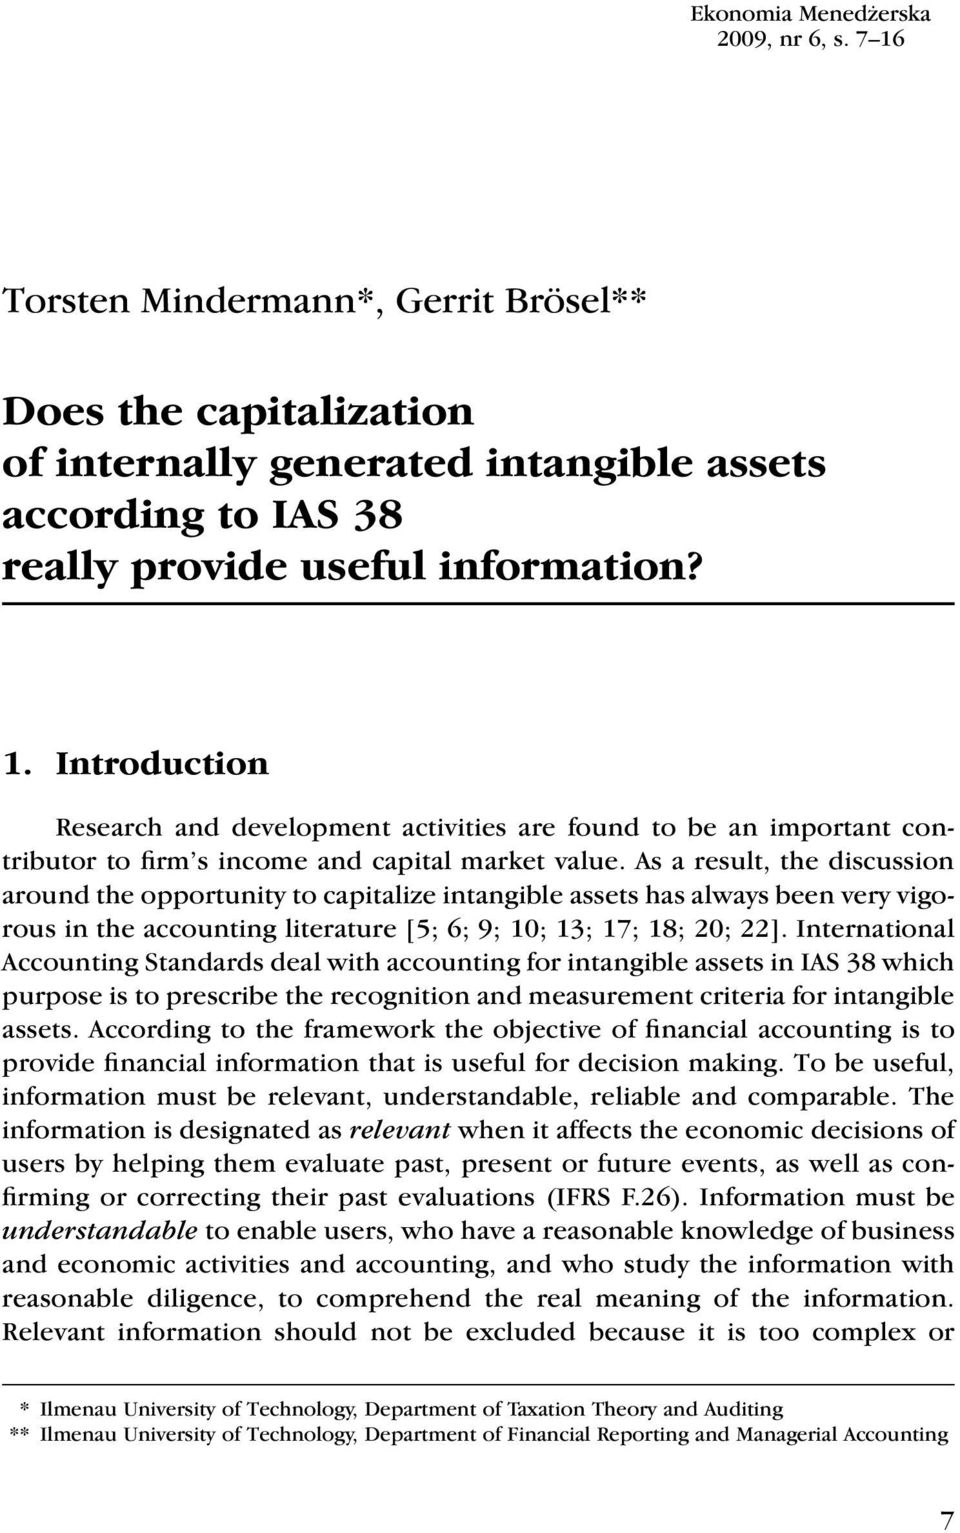 As a result, the discussion around the opportunity to capitalize intangible assets has always been very vigorous in the accounting literature [5; 6; 9; 10; 13; 17; 18; 20; 22].